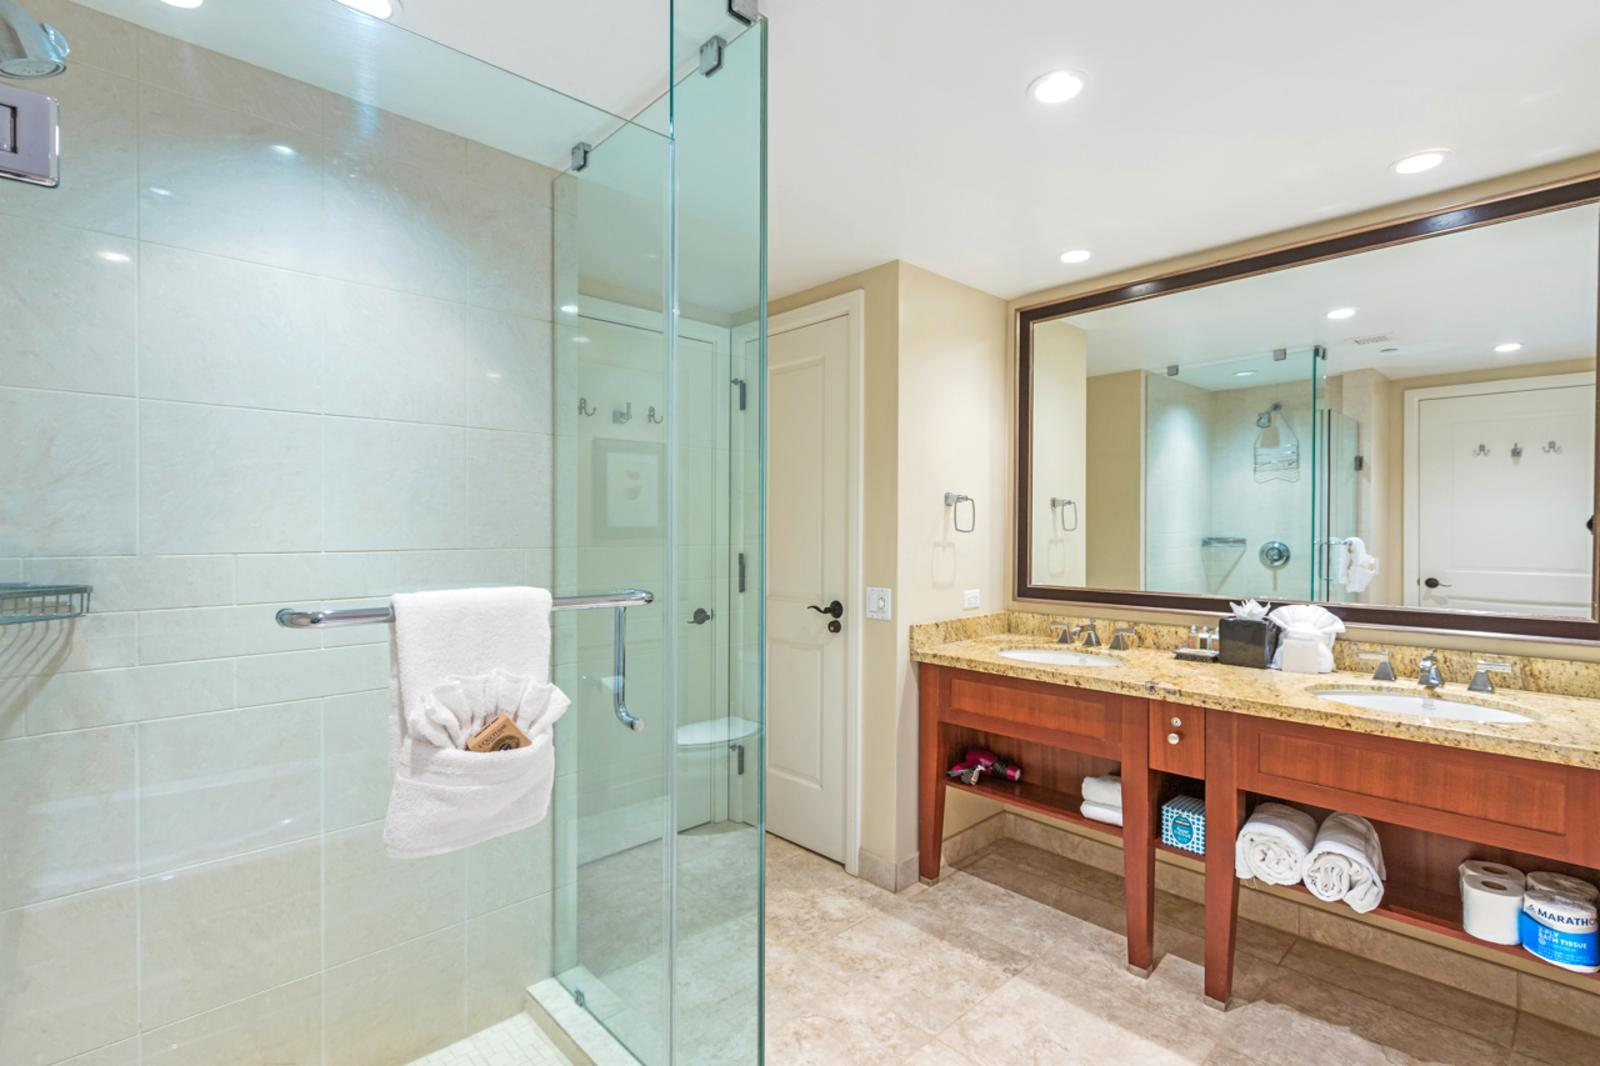 Floor to ceiling glass enclosed shower with premium accent lighting